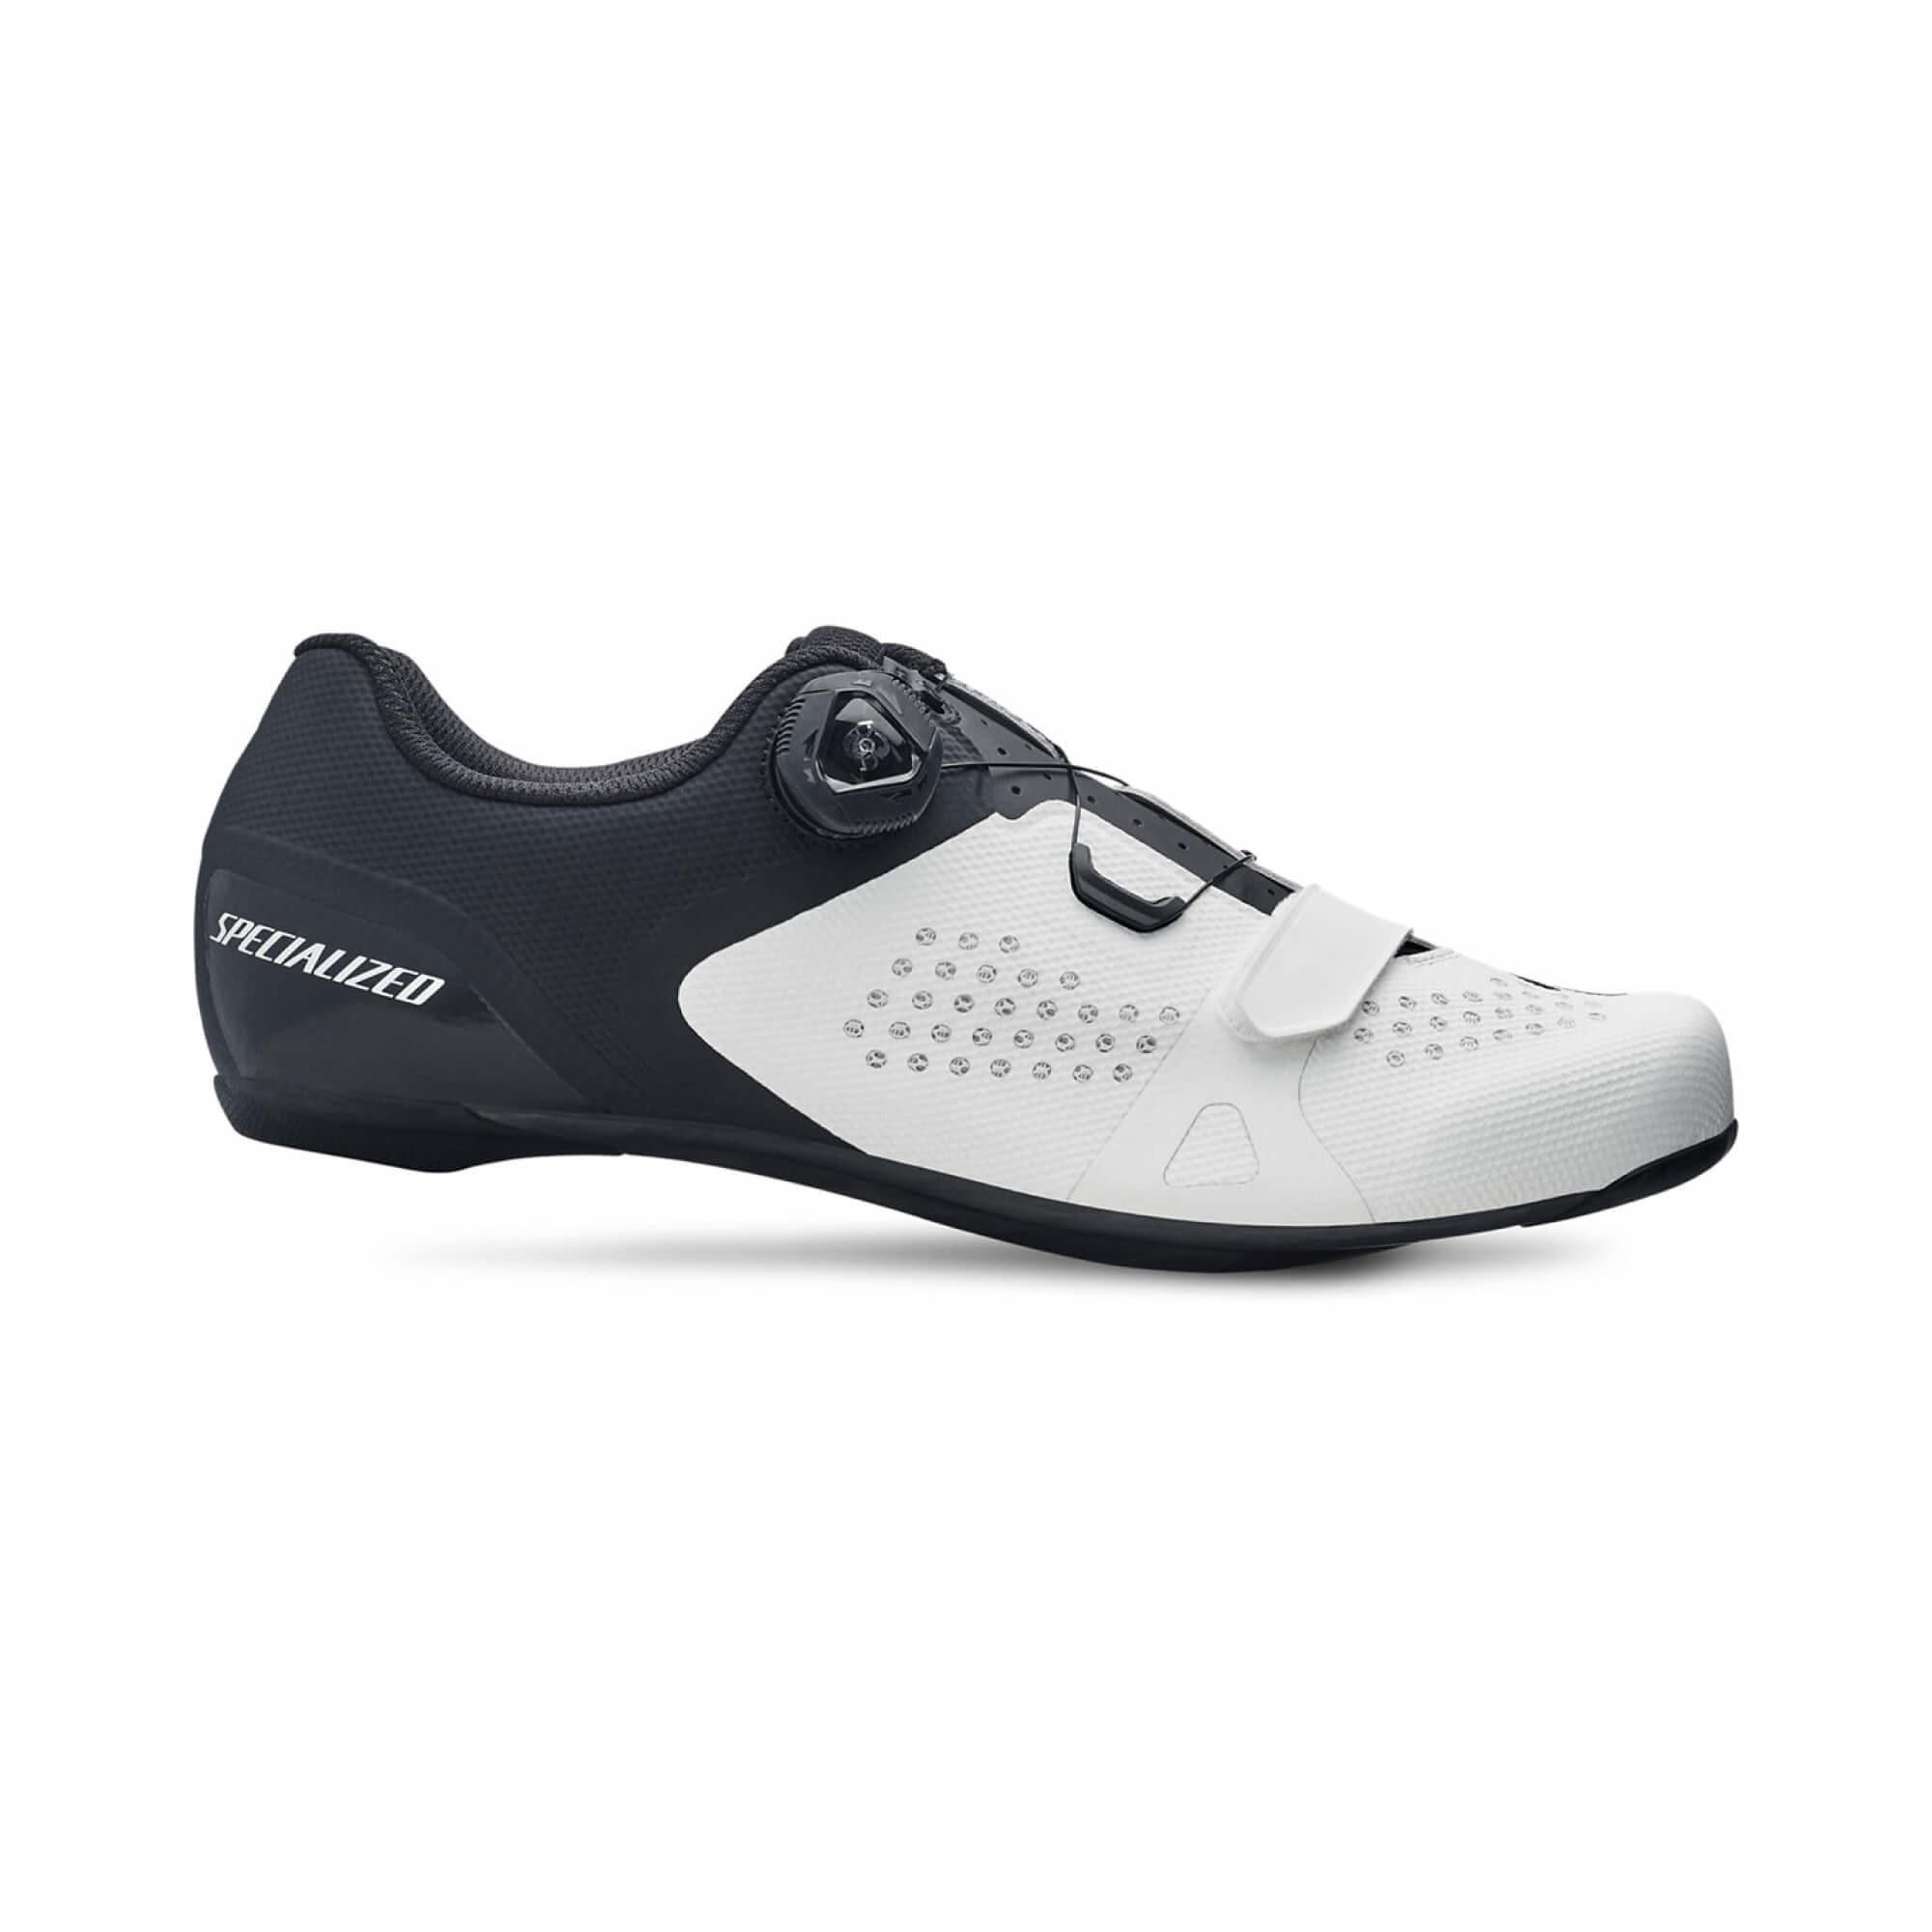 Torch 3.0 Road Shoe-12